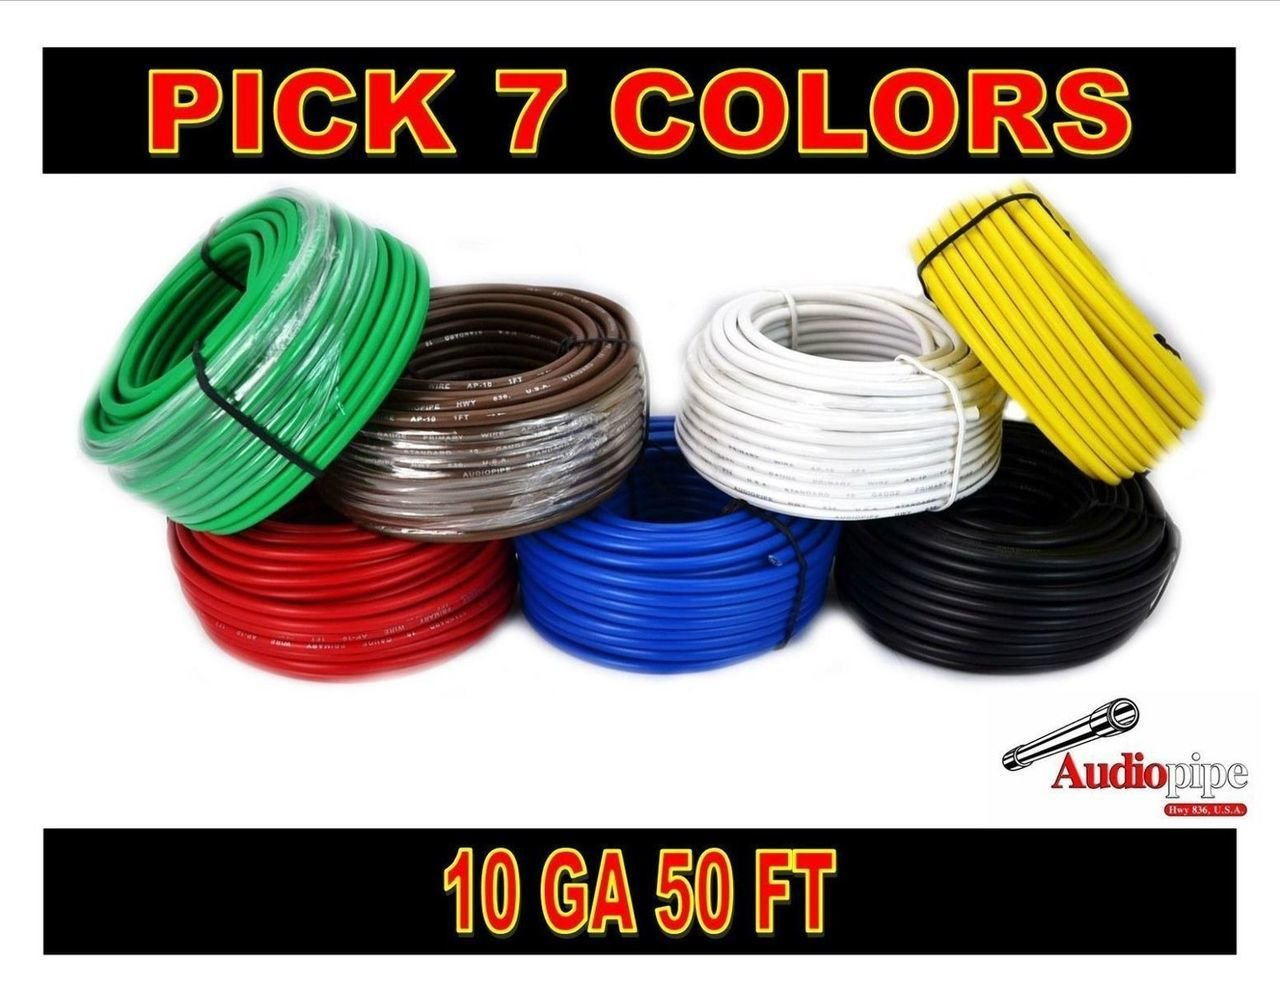 10 GA GAUGE 50 FT ROLLS PRIMARY AUTO REMOTE POWER GROUND WIRE CABLE (7 COLORS)